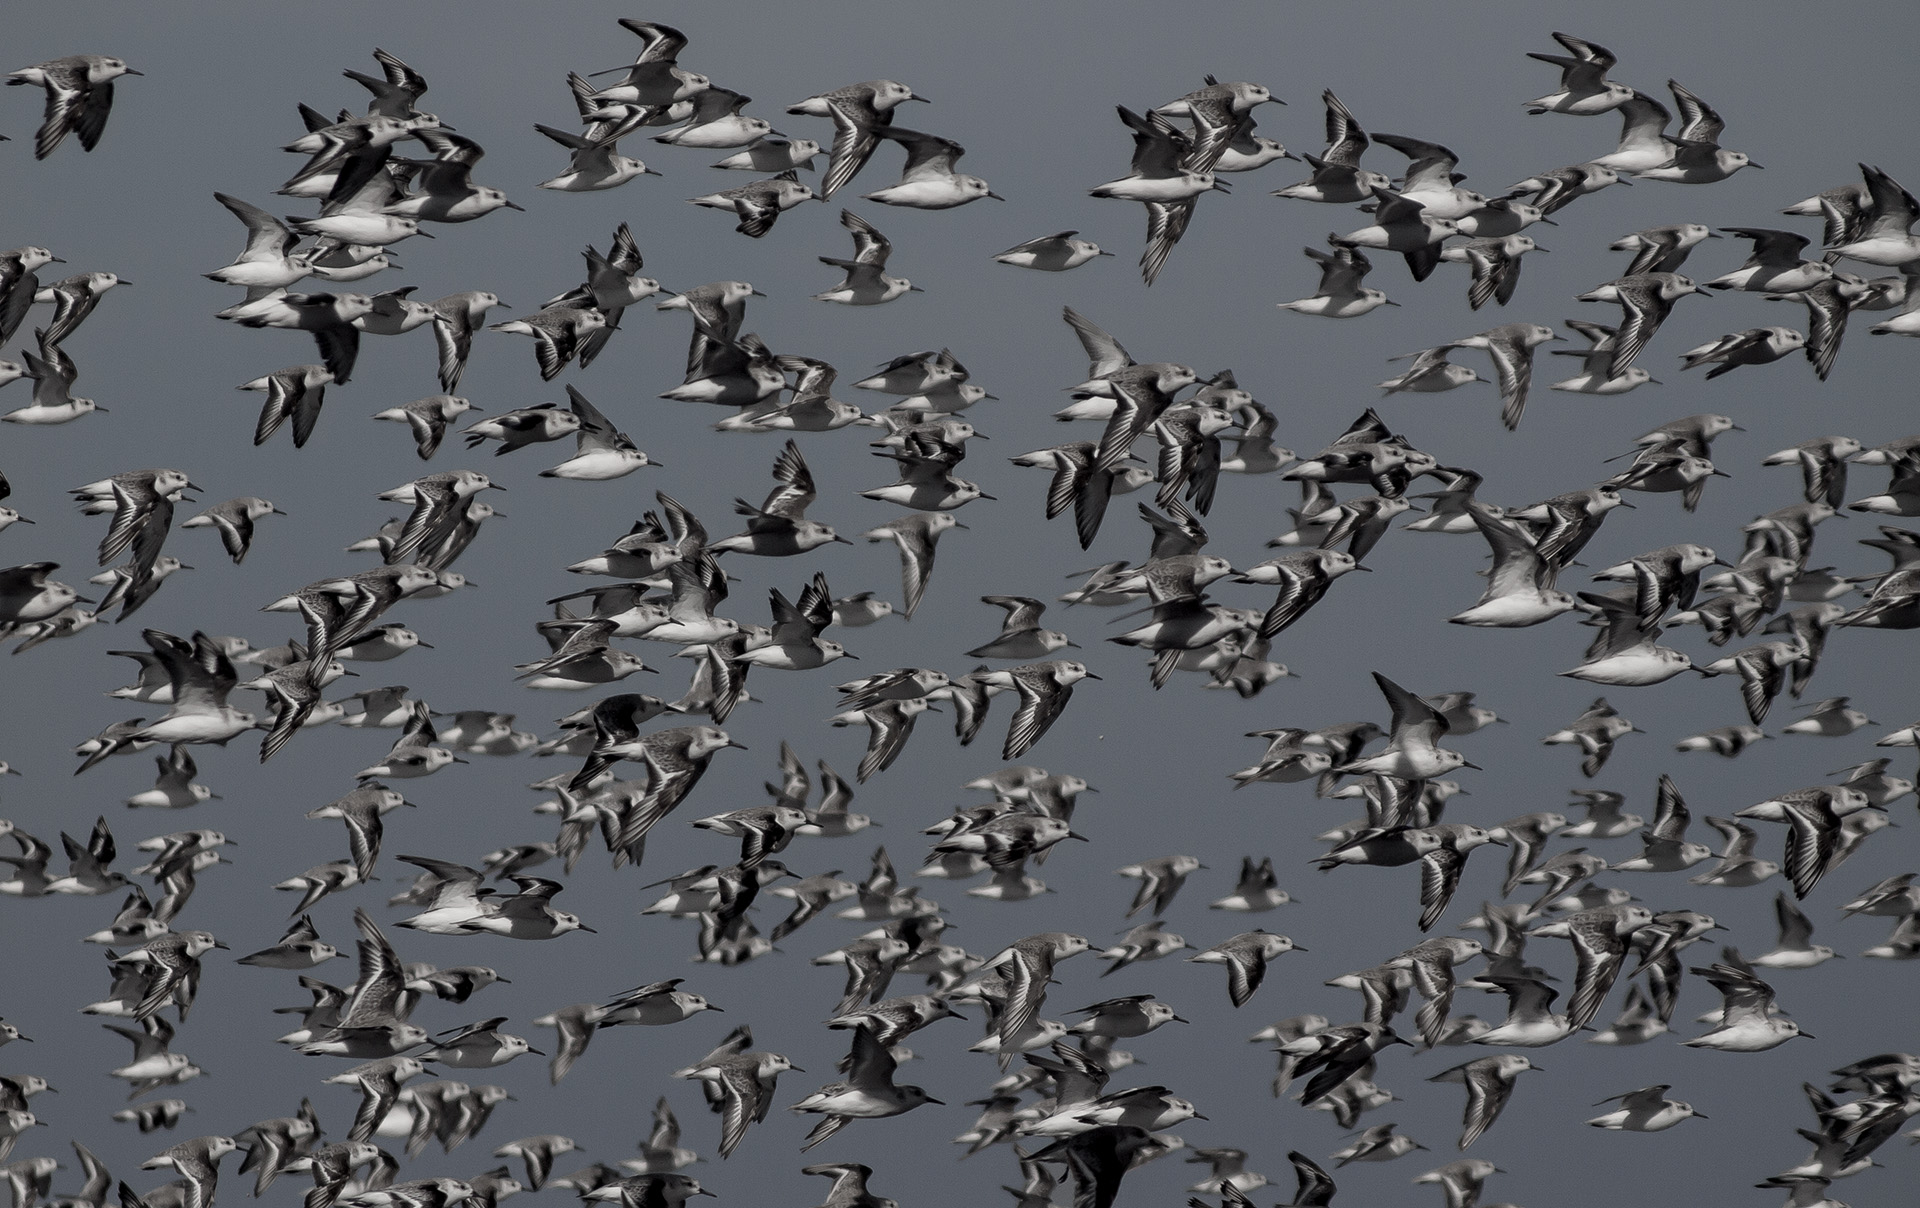 Quantum biology may help explain aspects of life that still confound us, such as bird migrations.   Rafael Edwards/Flickr  (CC BY-NC 2.0)